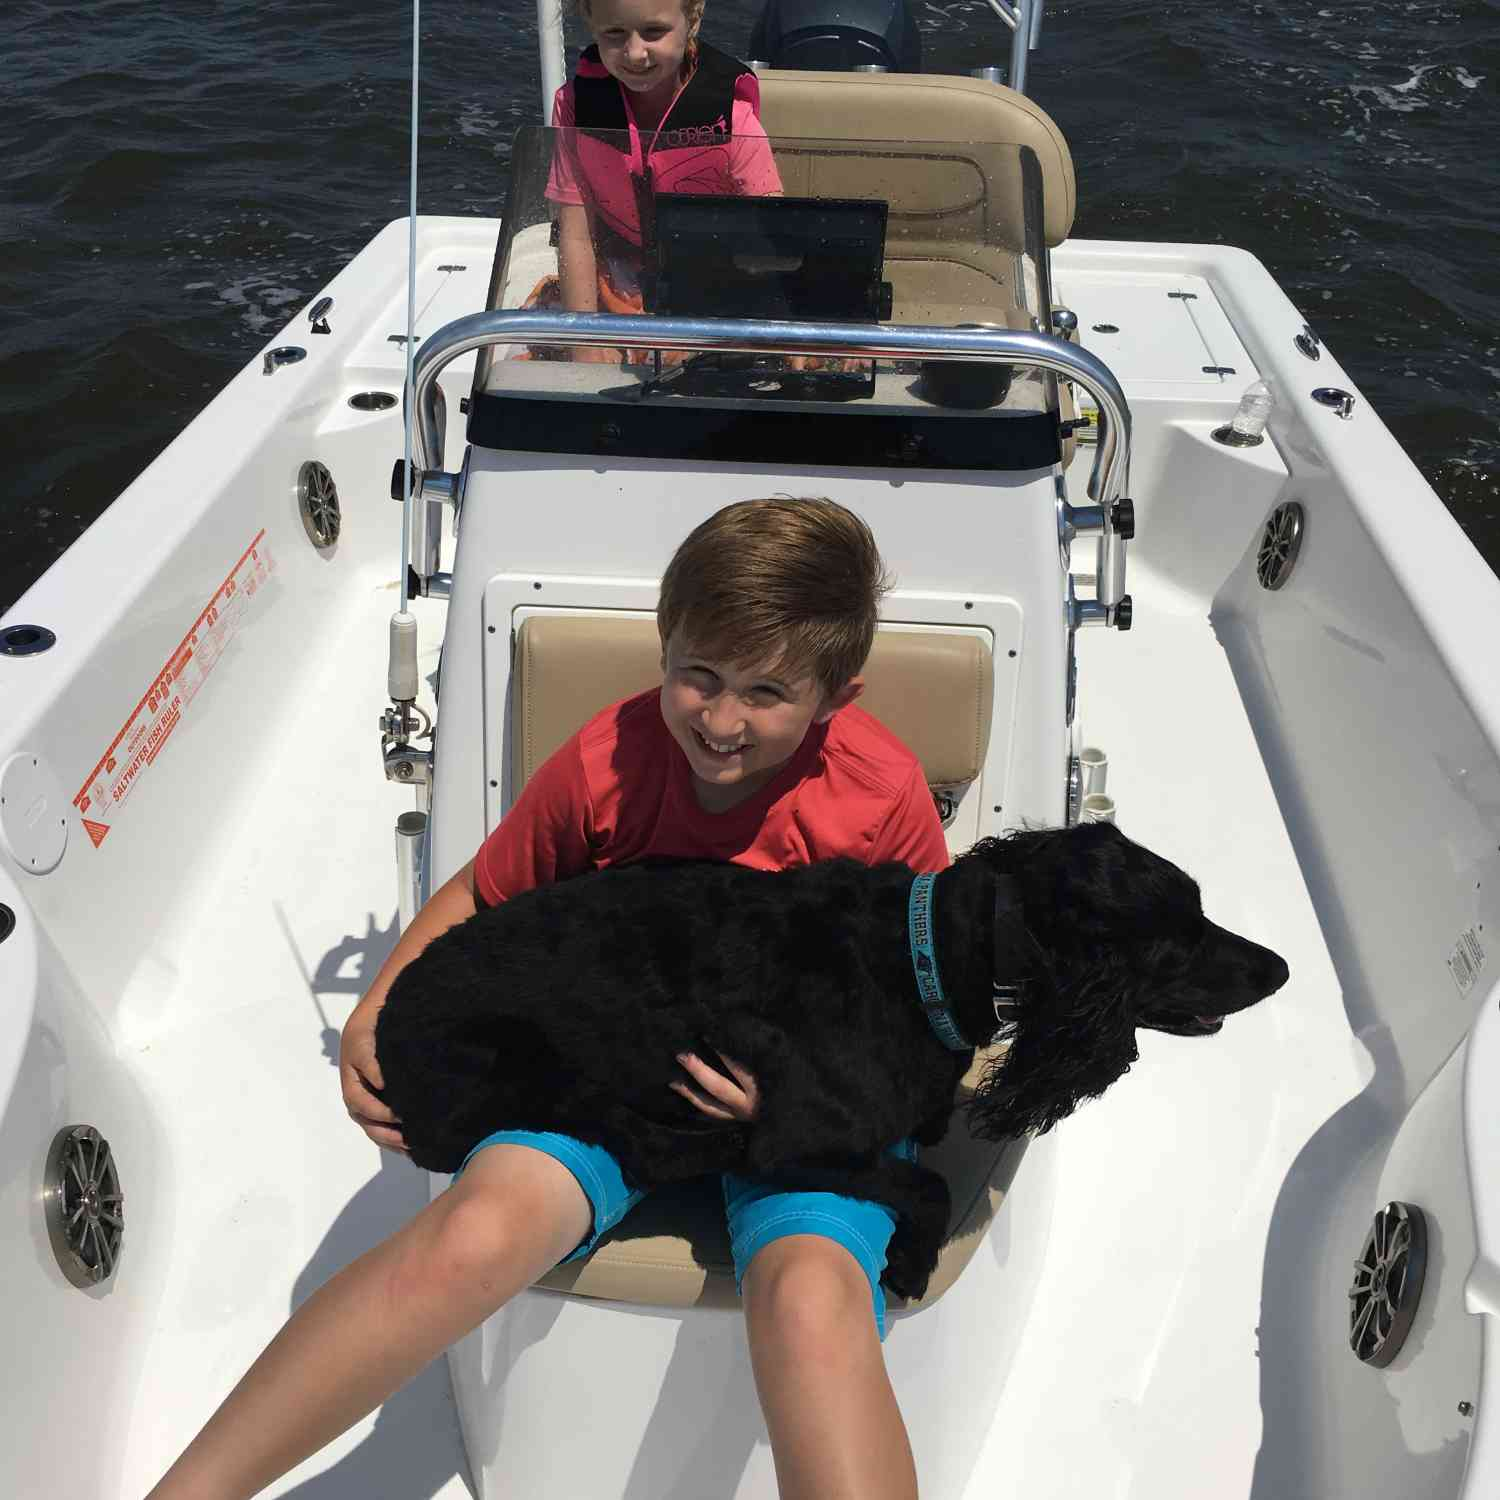 Title: Charleston Harbor cruising - On board their Sportsman Masters 207 Bay Boat - Location: Charleston, Sc. Participating in the Photo Contest #SportsmanAugust2018